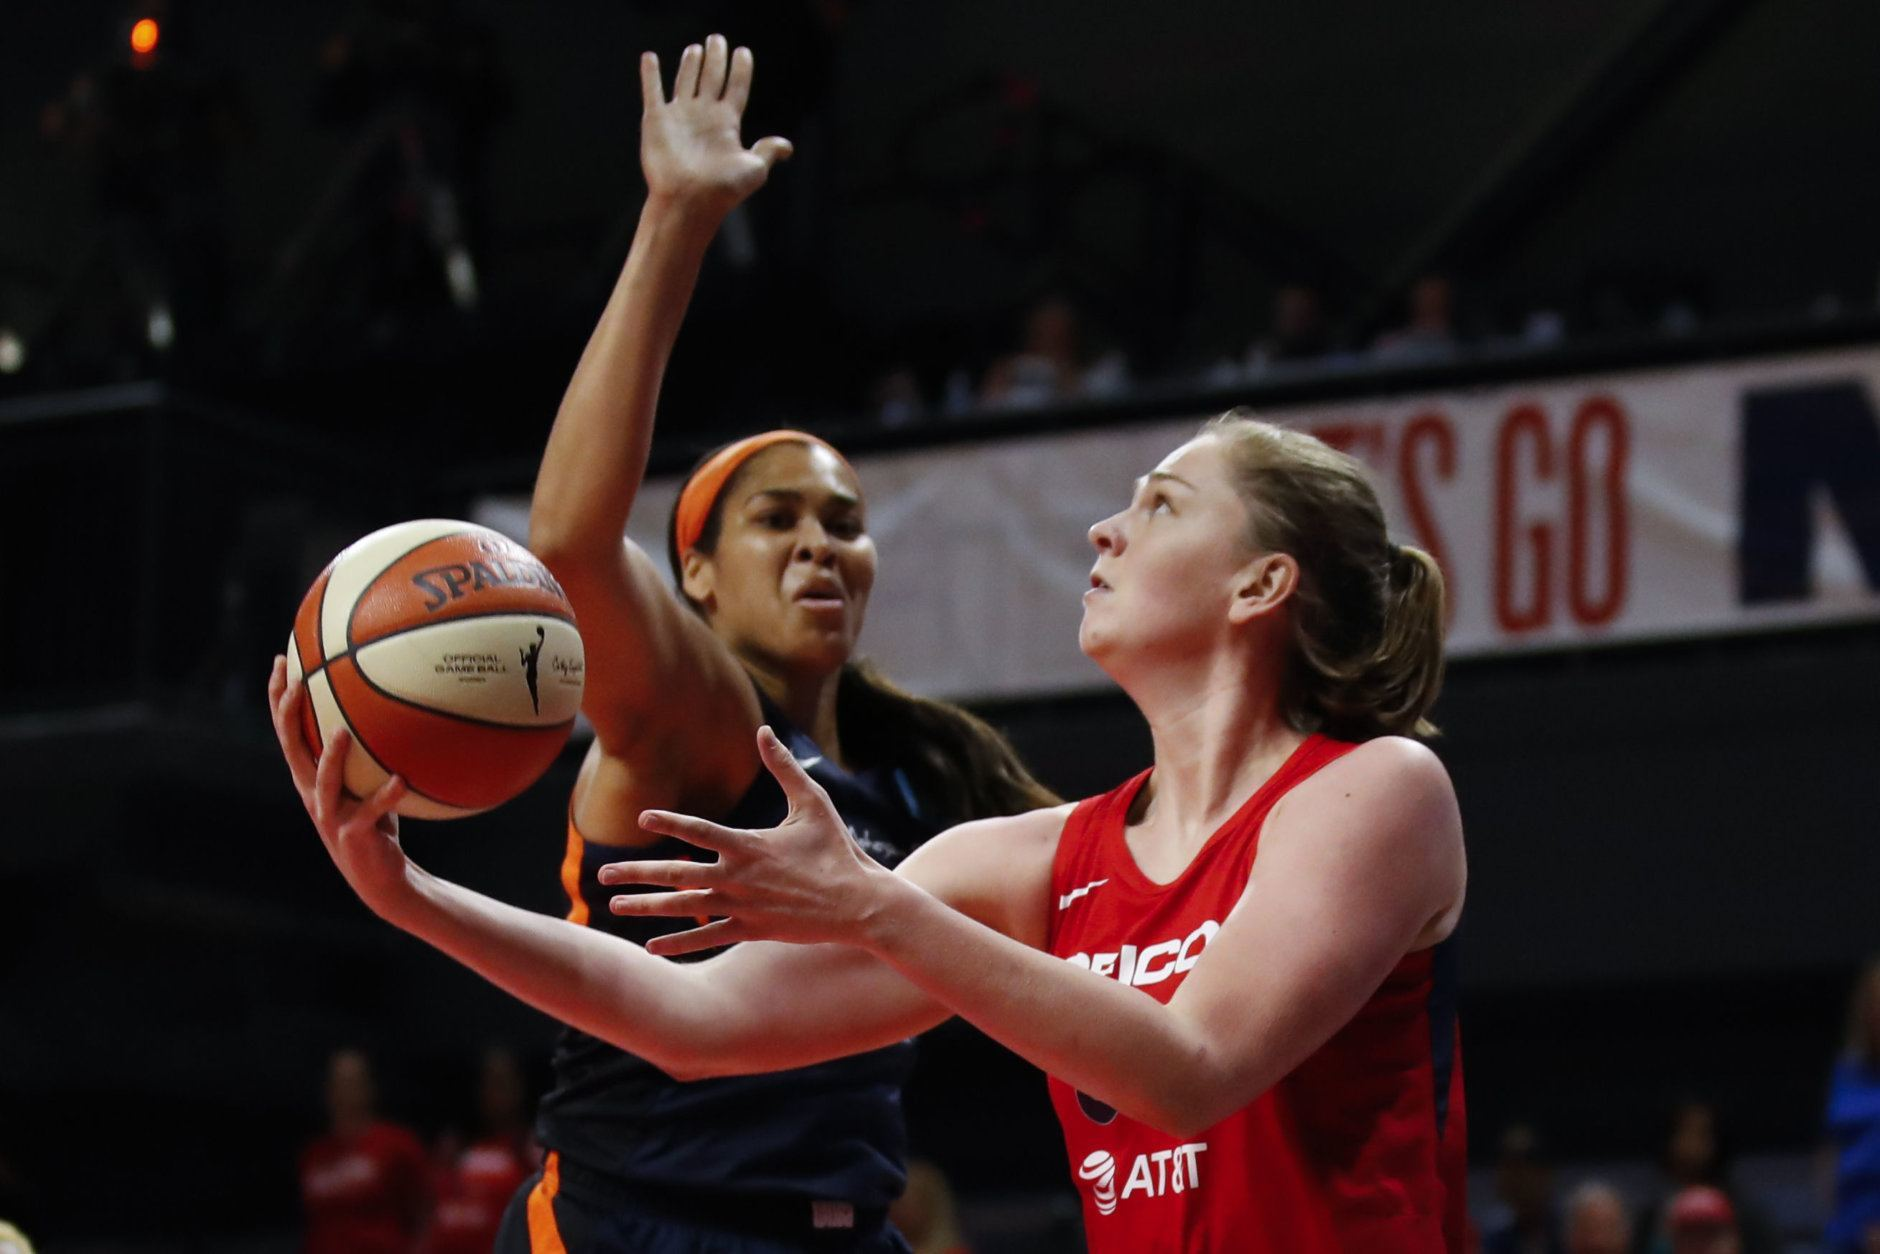 Washington Mystics center Emma Meesseman, right, shoots in front of Connecticut Sun center Brionna Jones during the second half of Game 5 of basketball's WNBA Finals, Thursday, Oct. 10, 2019, in Washington. (AP Photo/Alex Brandon)